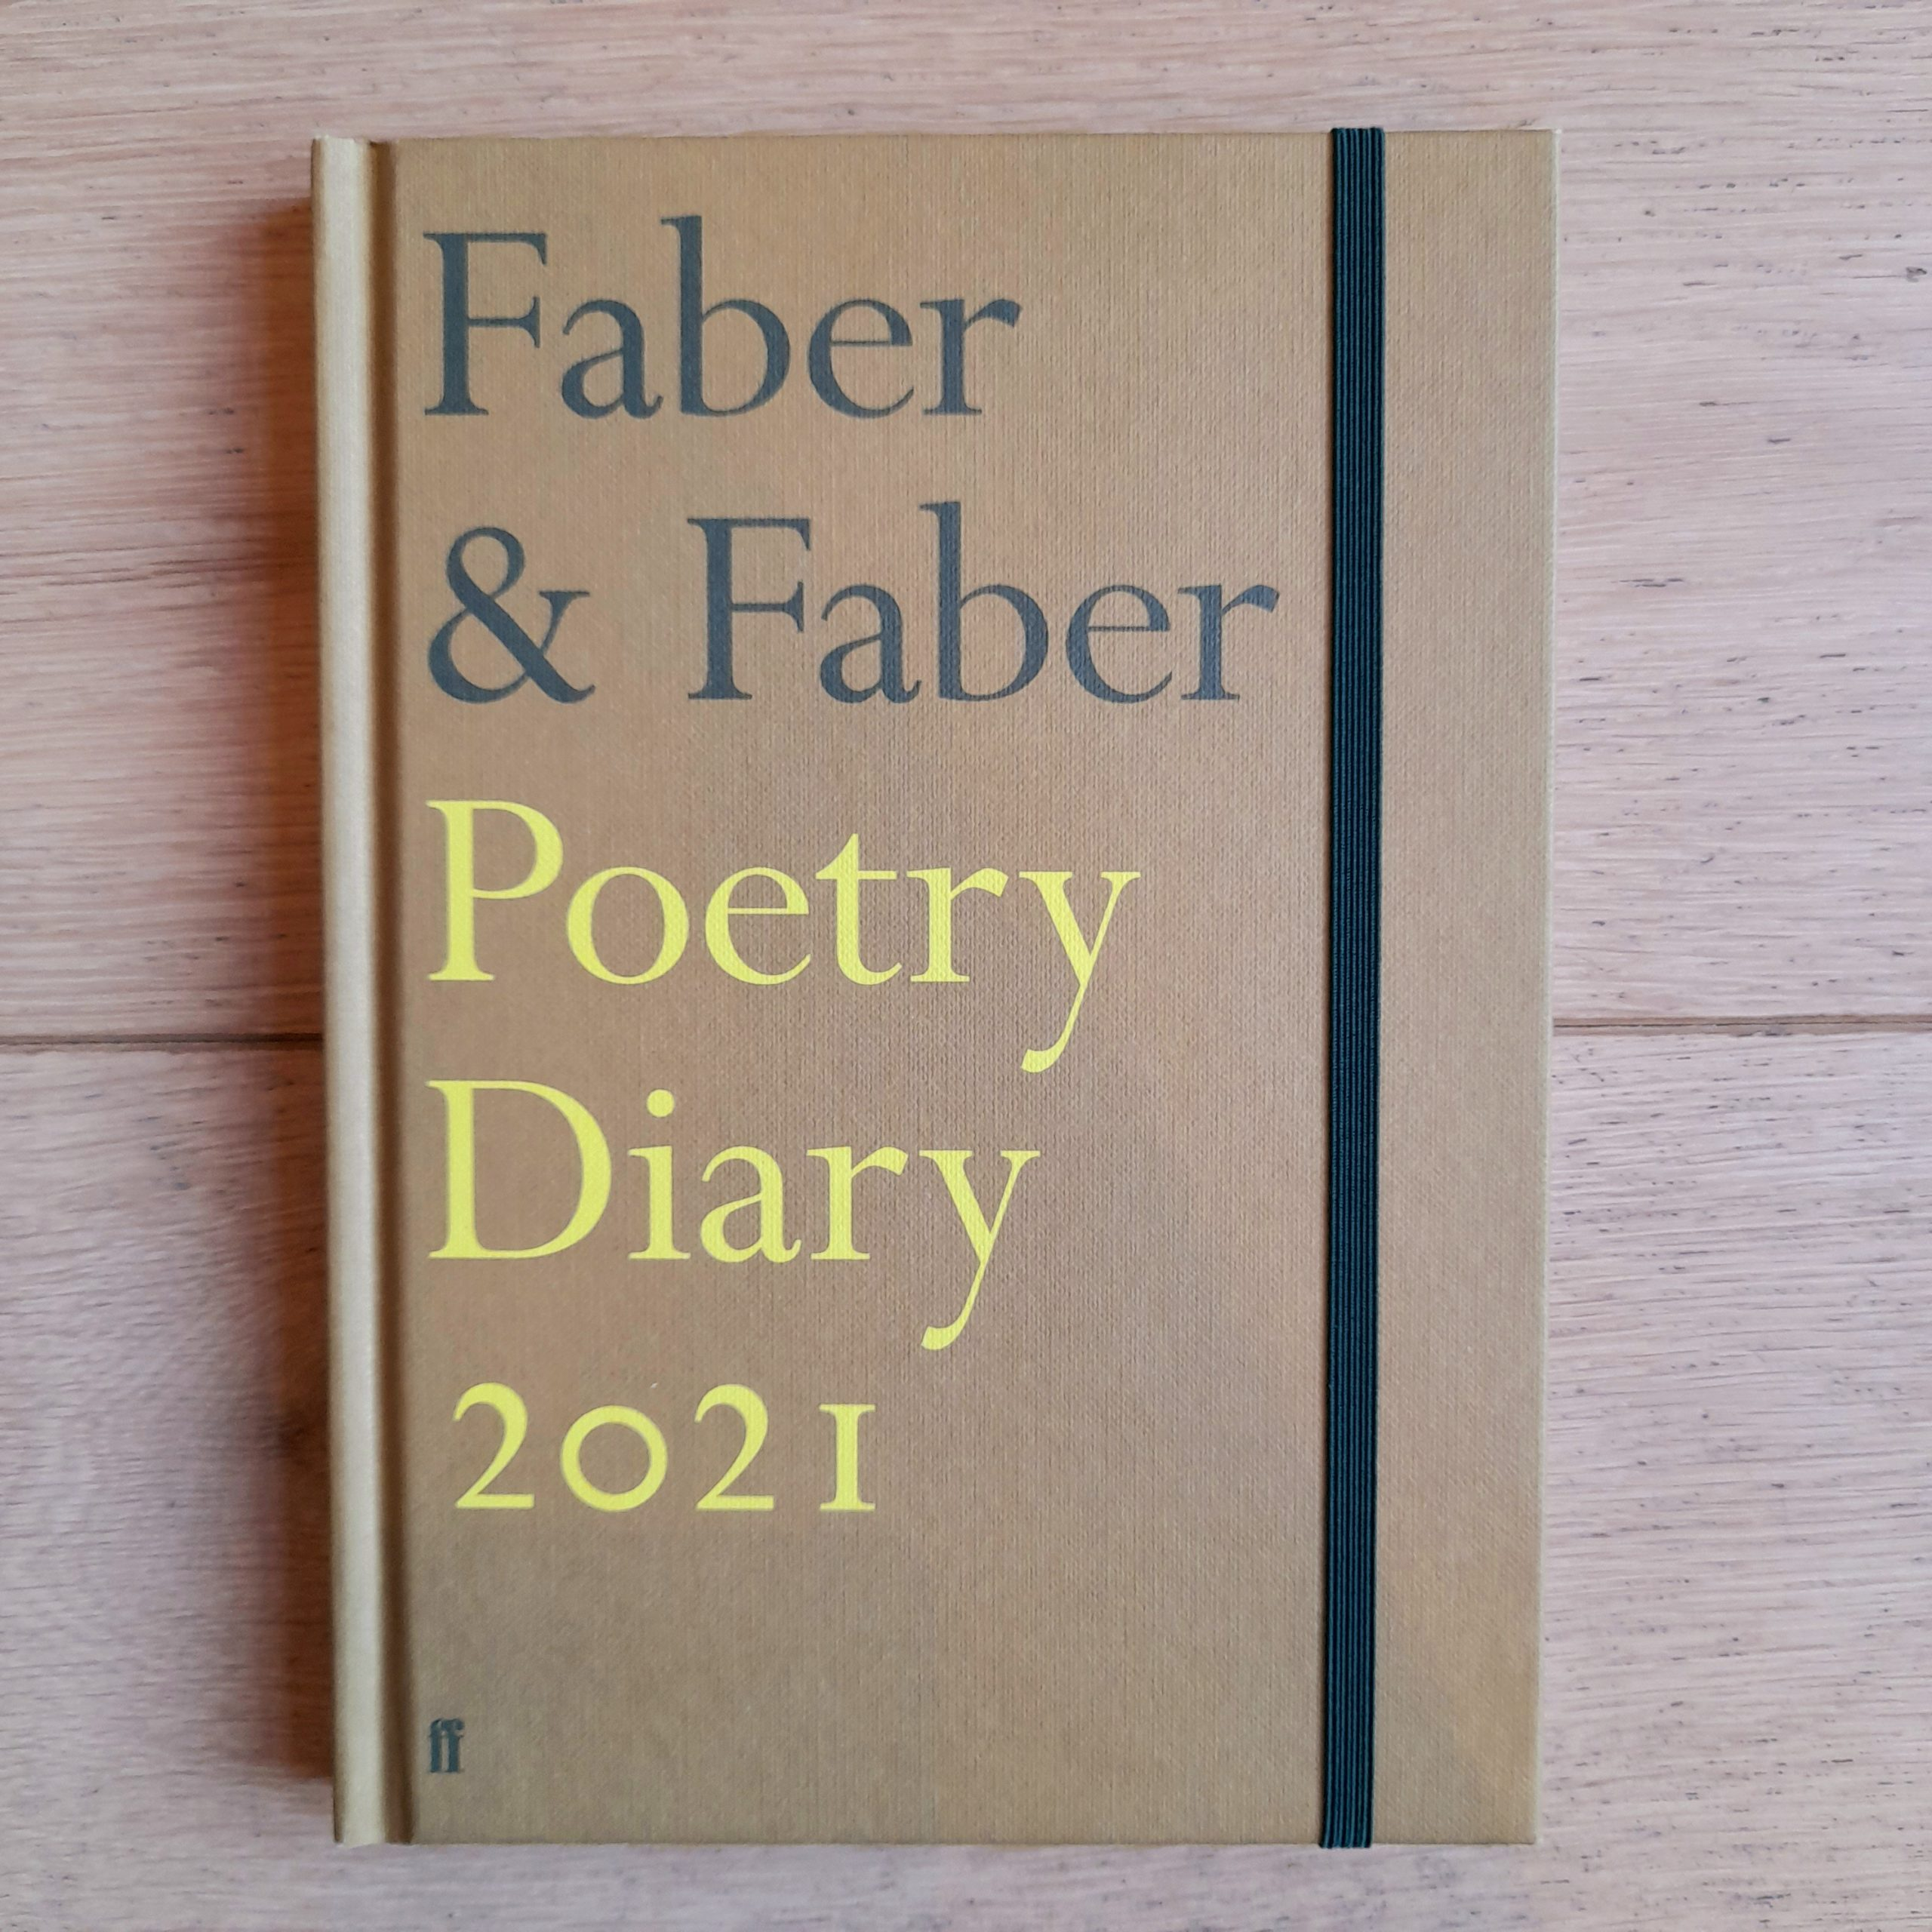 Faber & Faber 2021 Poetry Diary